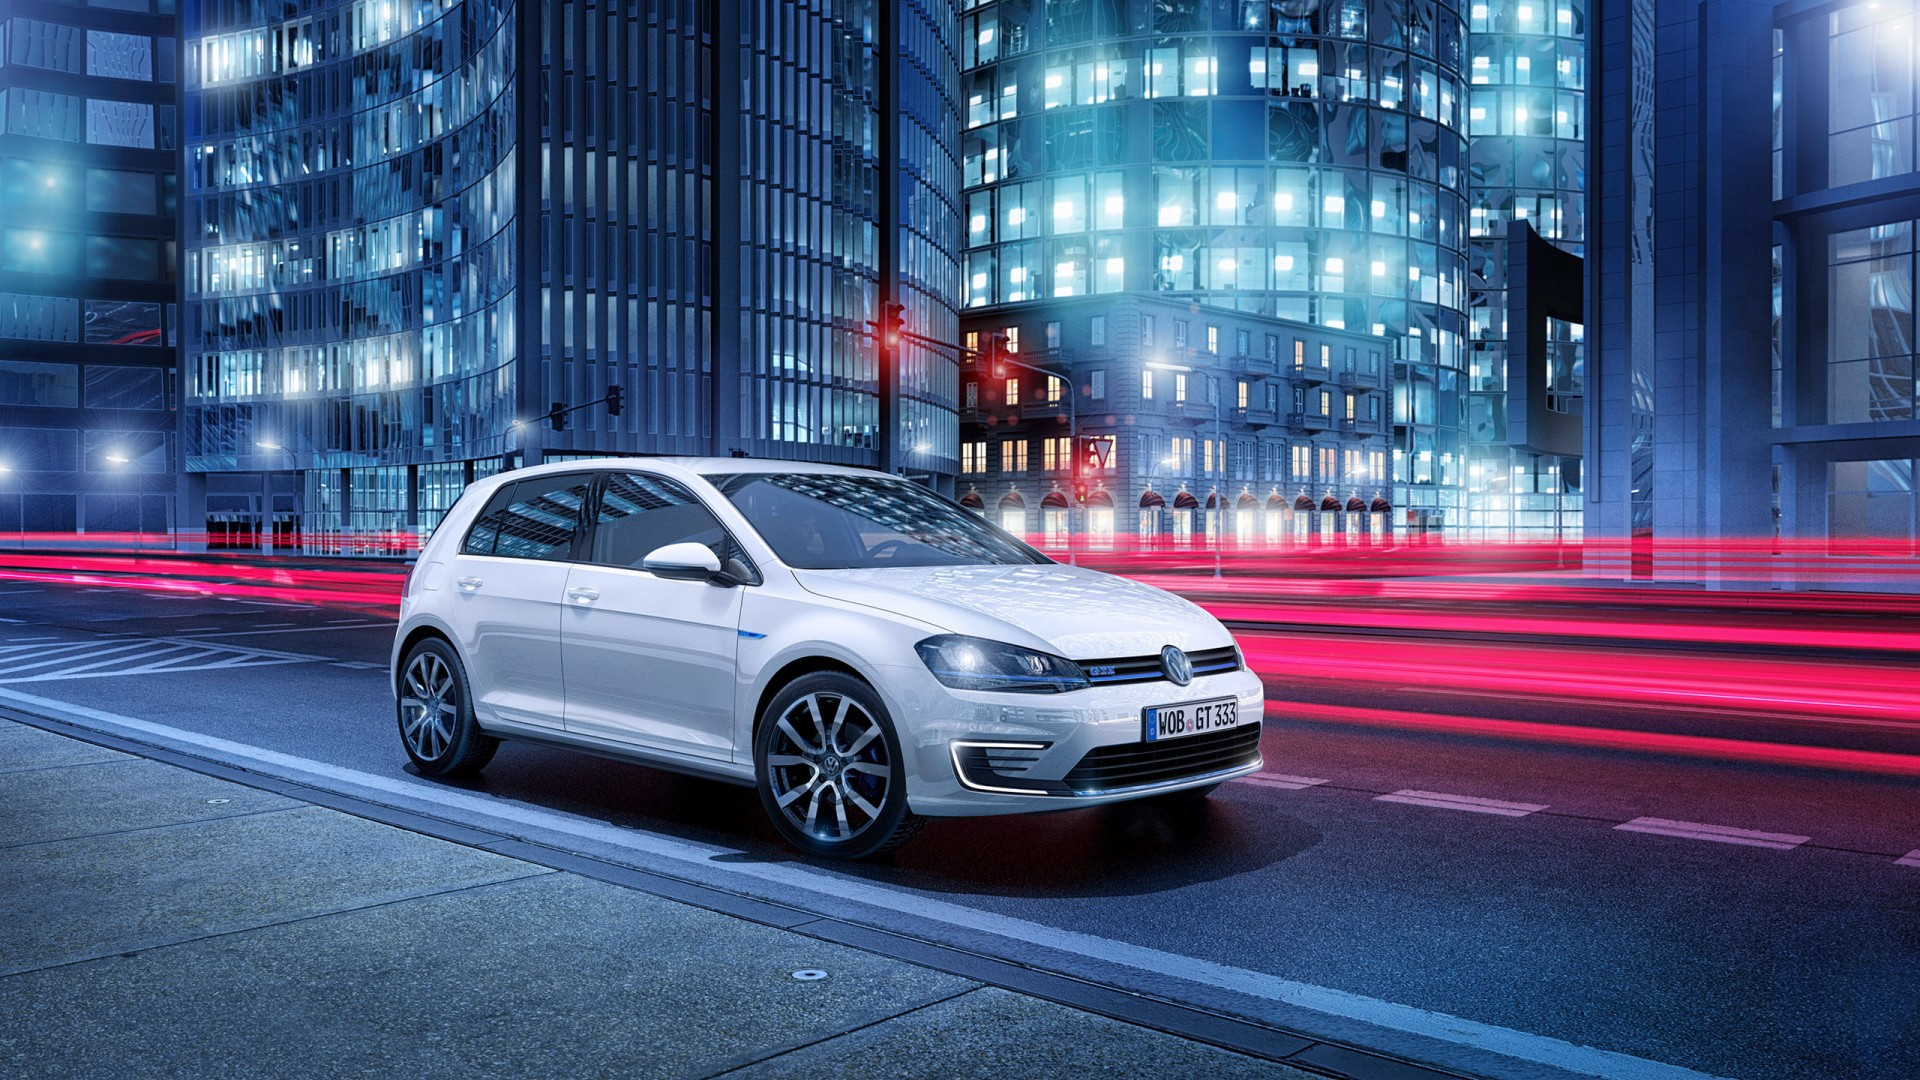 2014 Volkswagen Golf Gte Plug In Hybrid Wallpaper Hd Car